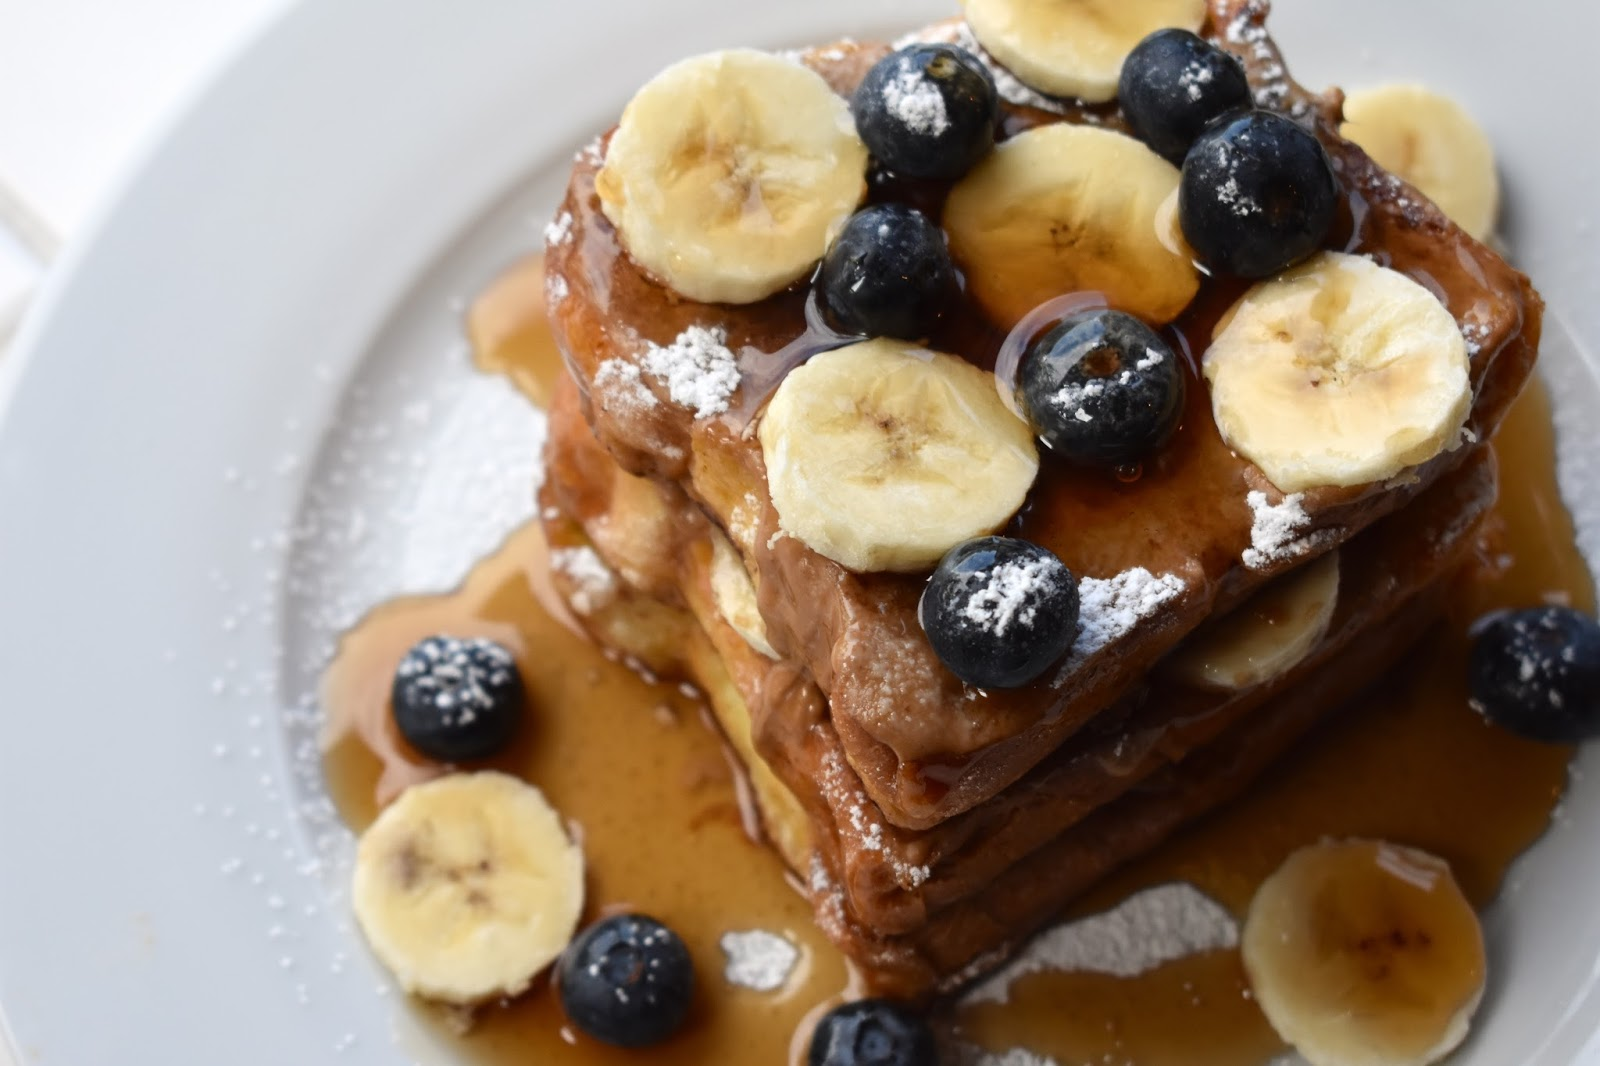 French brioche toast my own meal plan one cannot simply eat just one slice of our french brioche toast so we have to make them in bulk i love using my pancake griddle to help cook multiple ccuart Images